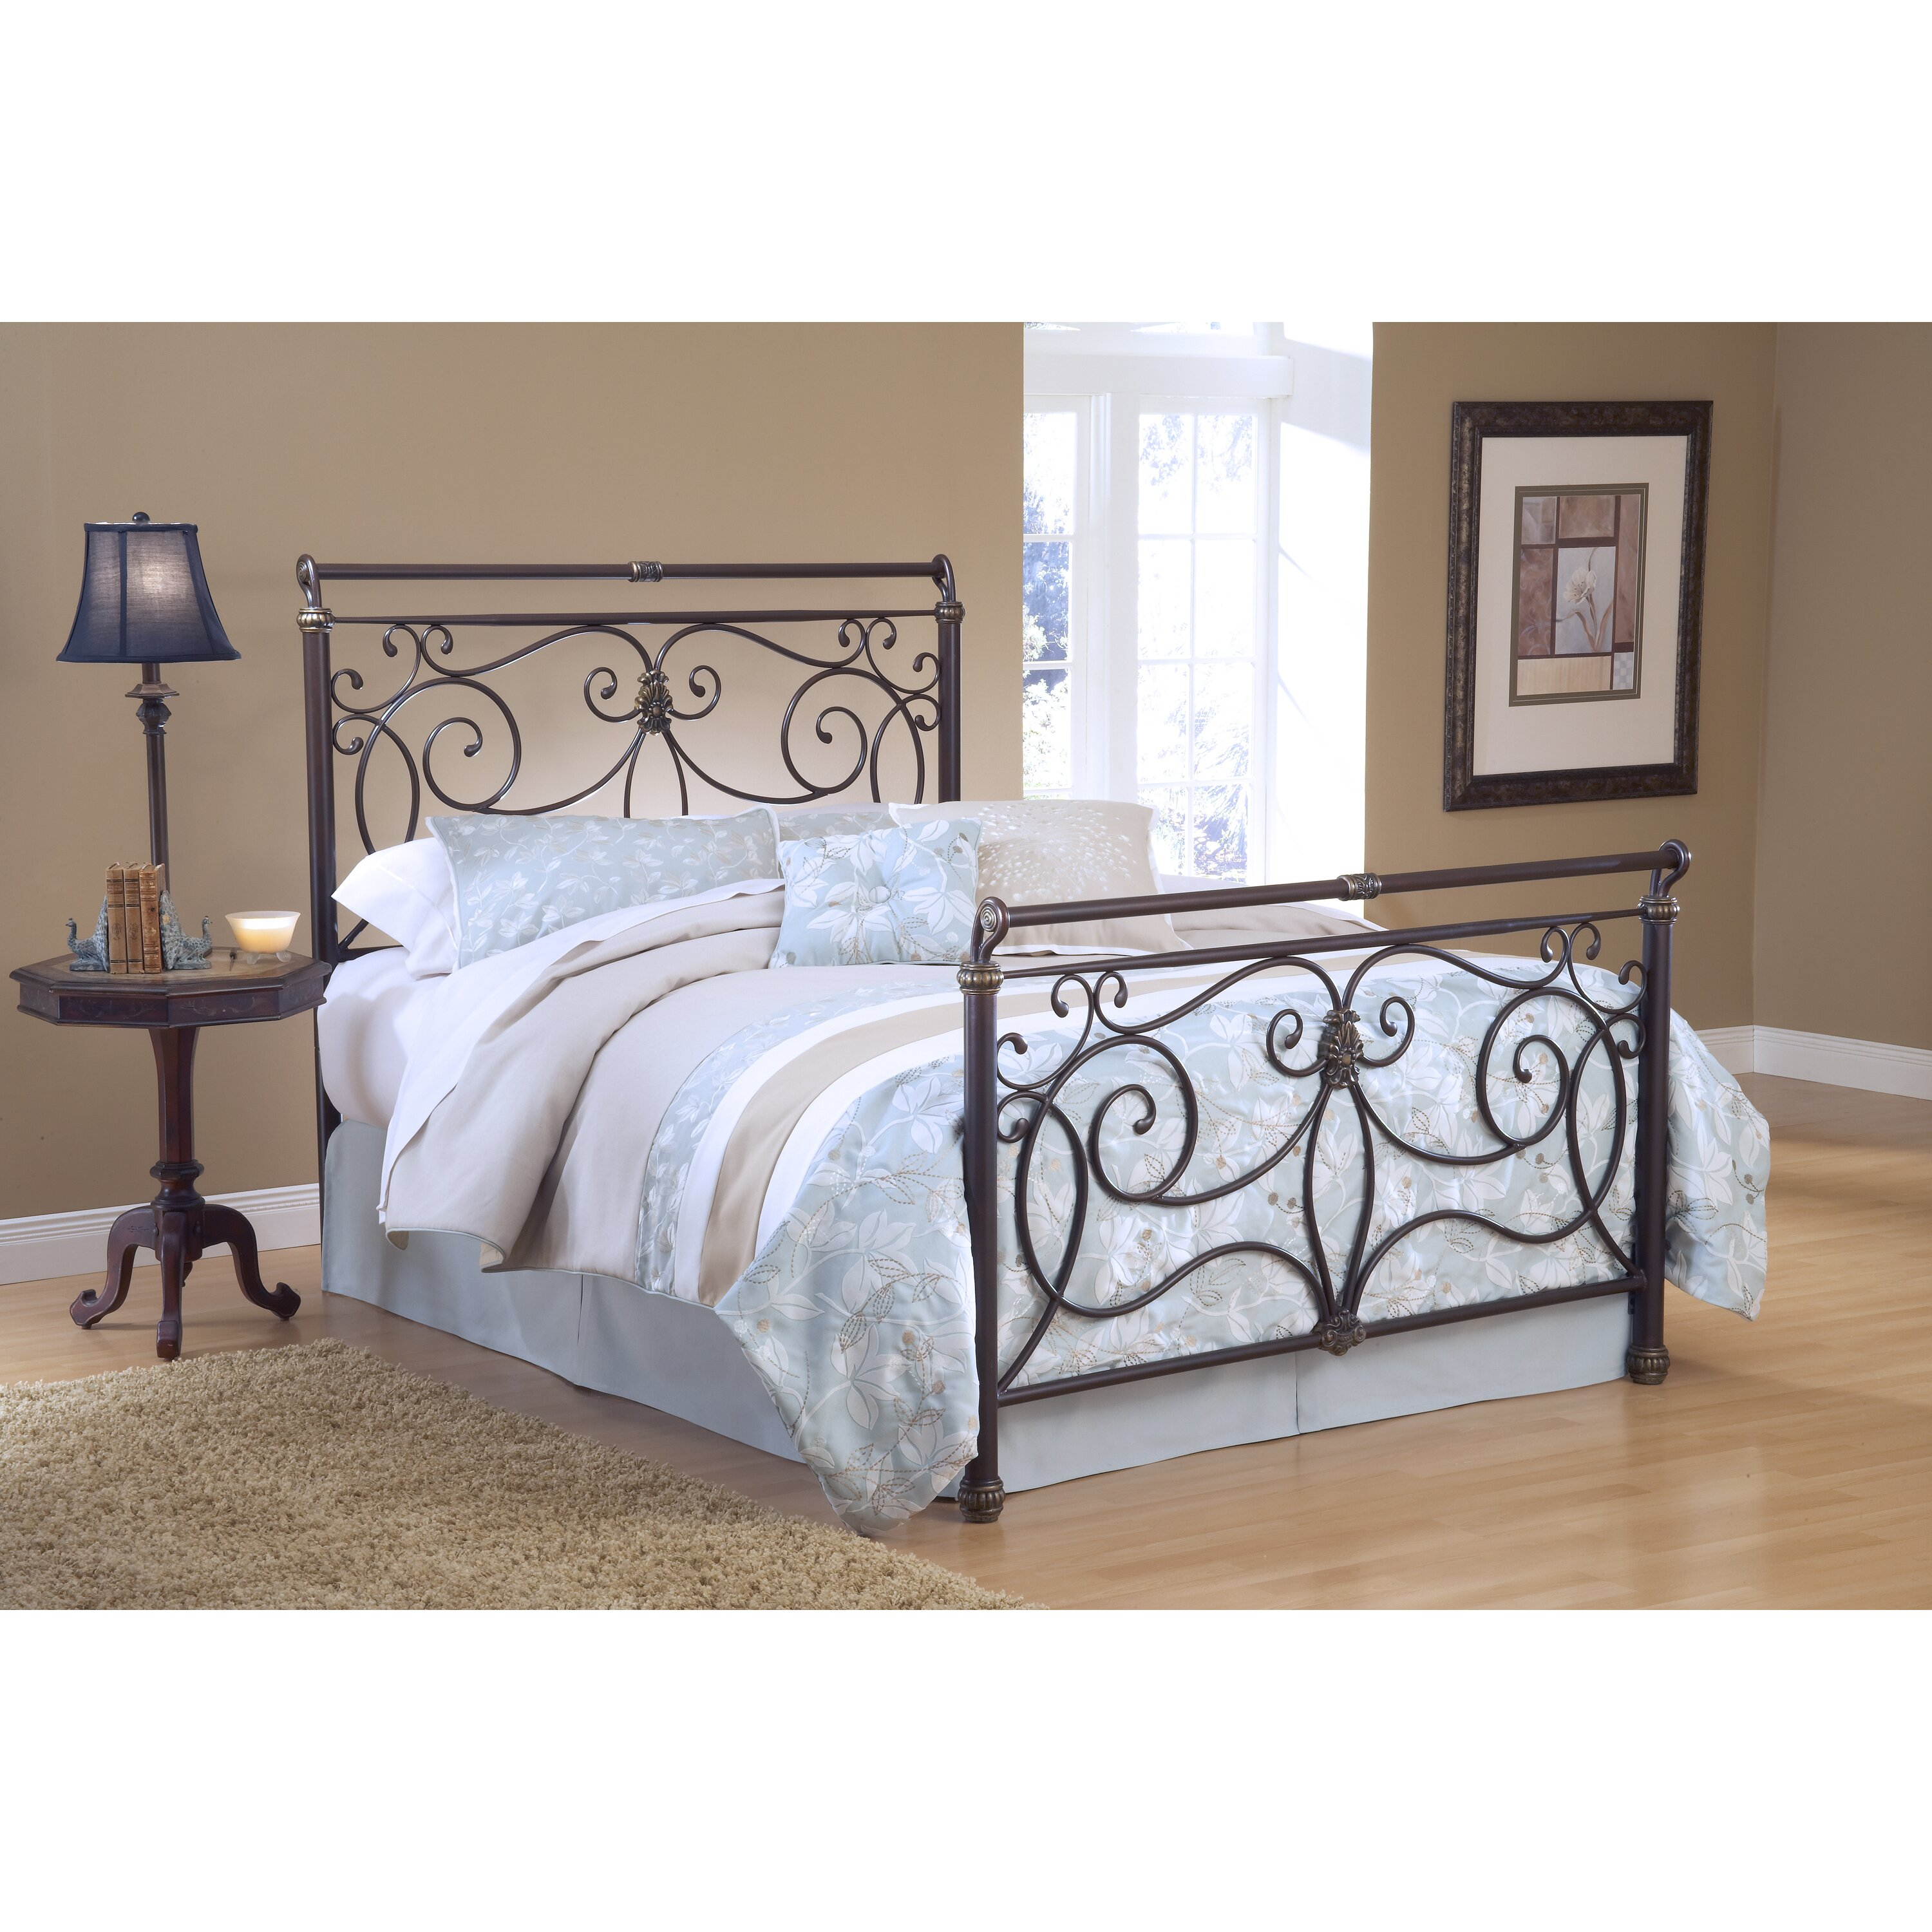 Hillsdale Brady Metal Headboard Reviews Wayfair